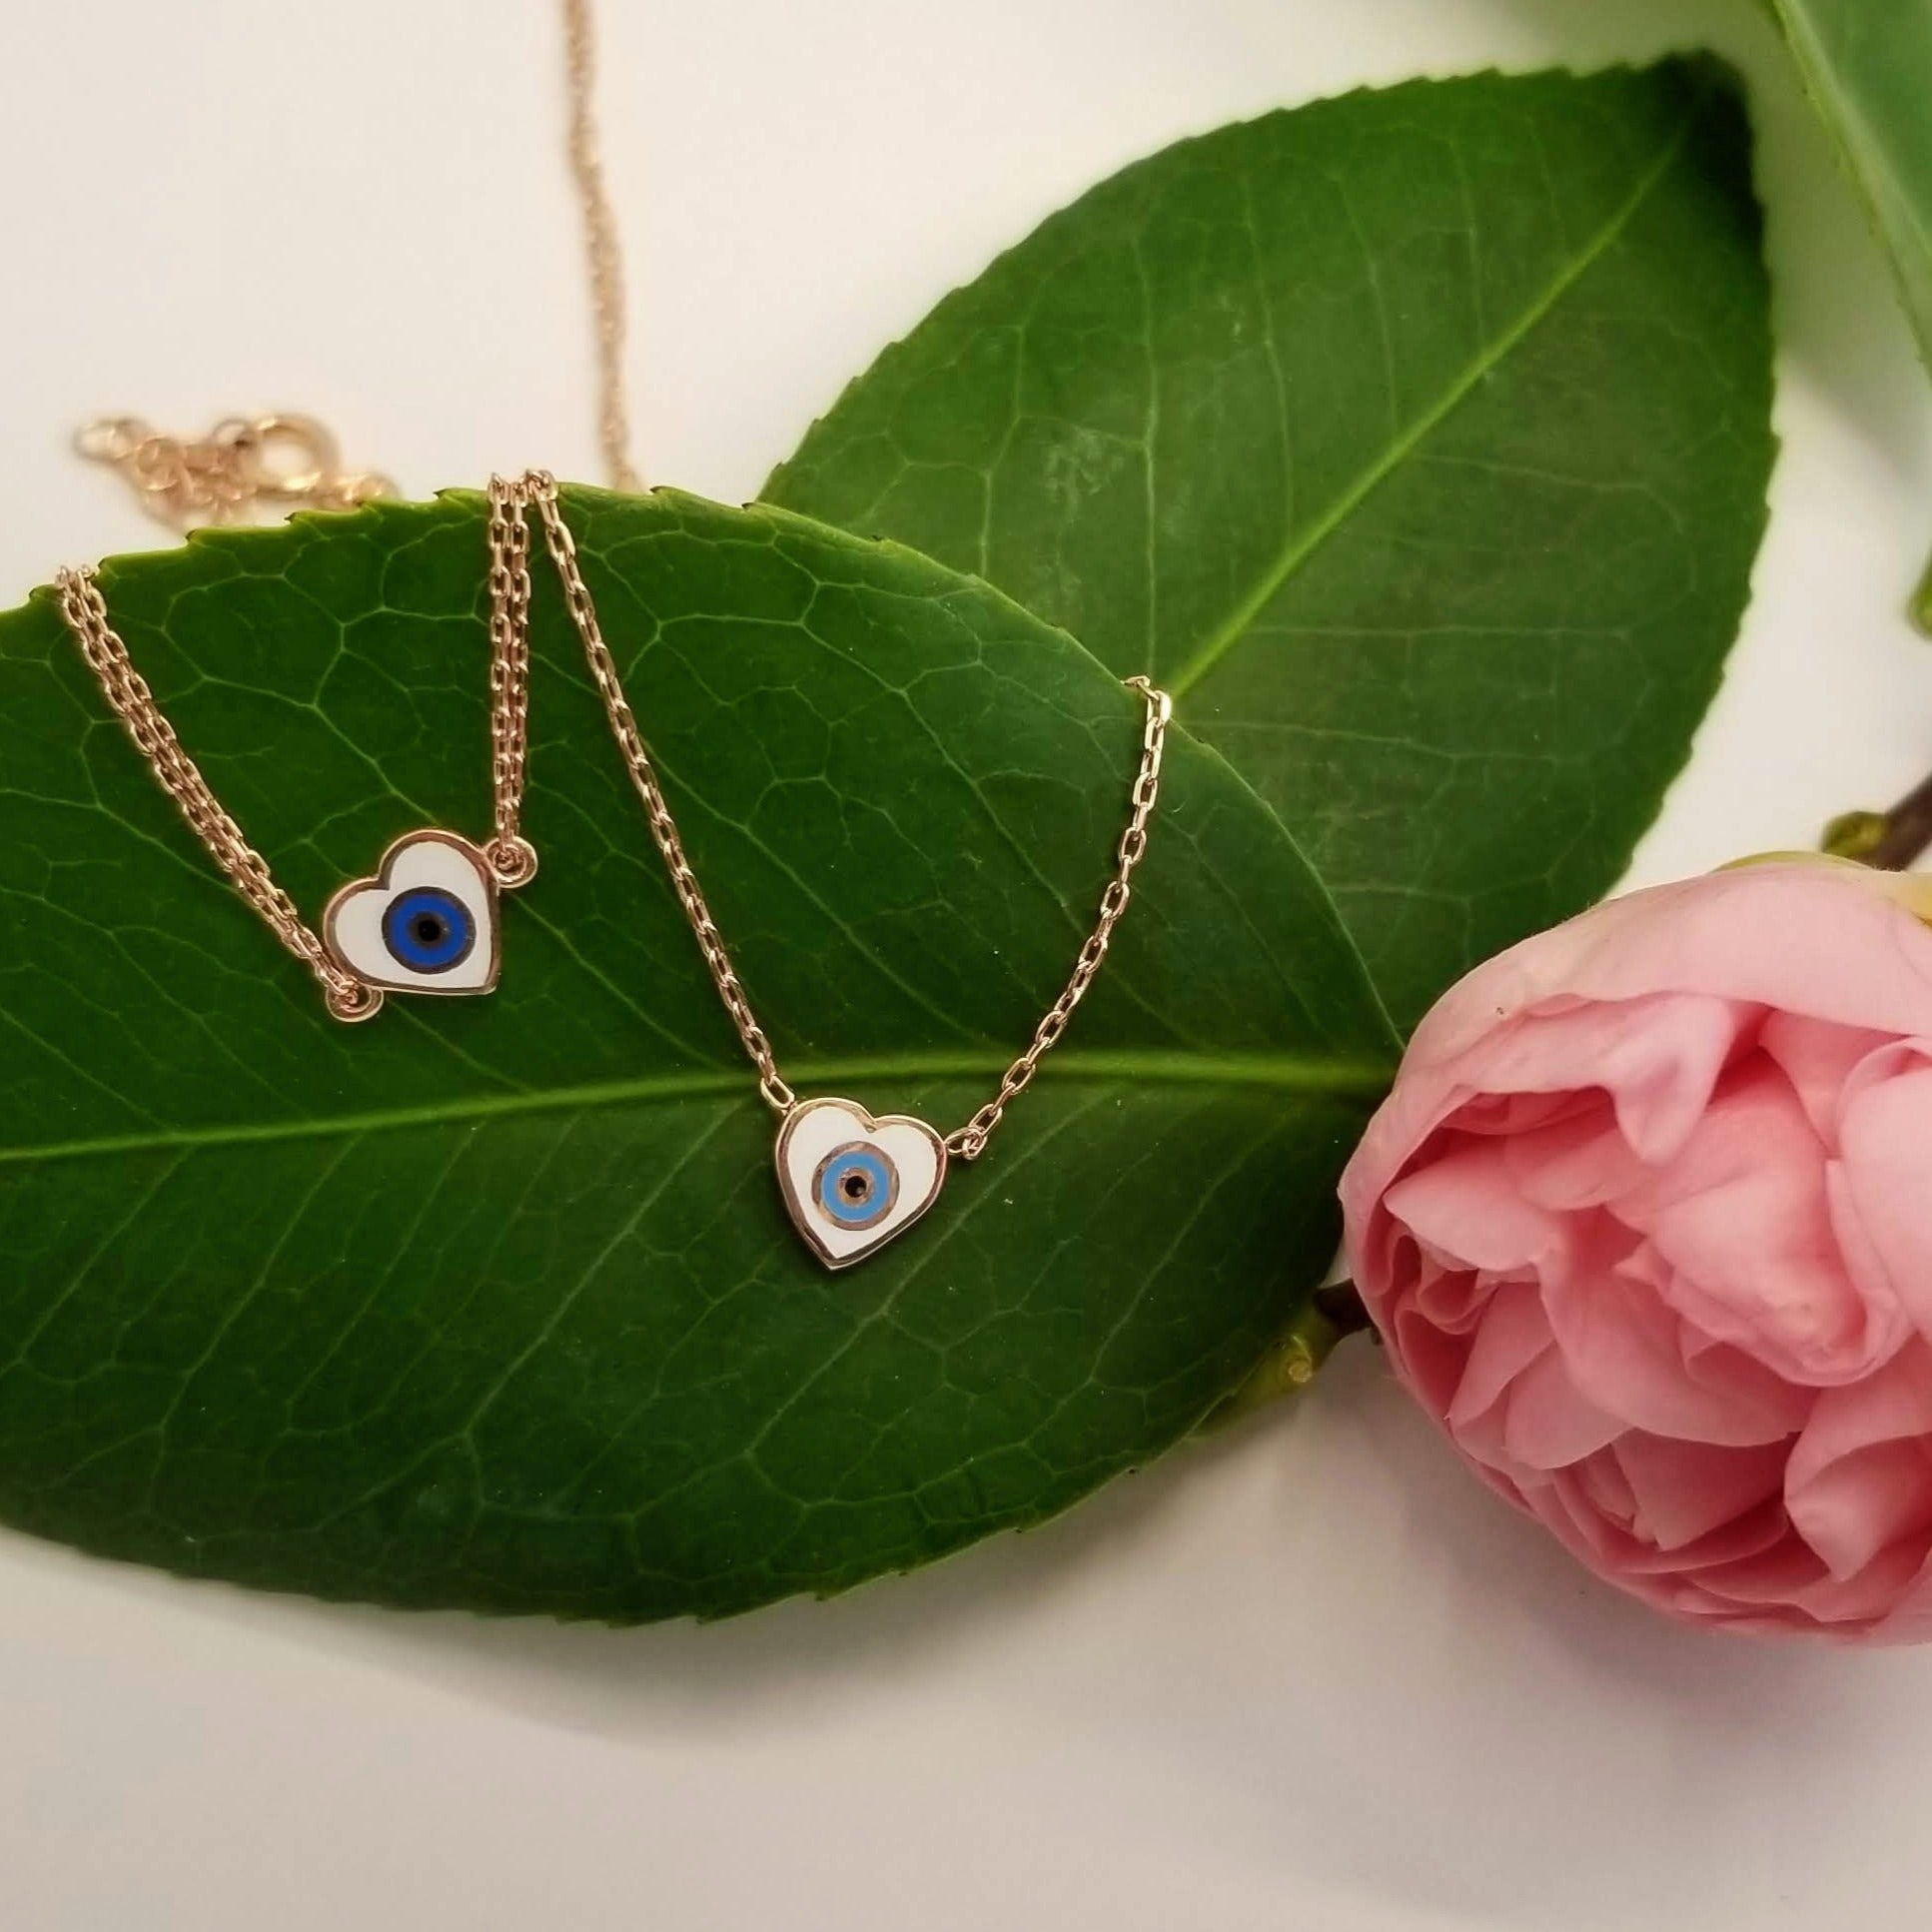 Heart Necklace and Bracelets With Evil Eye